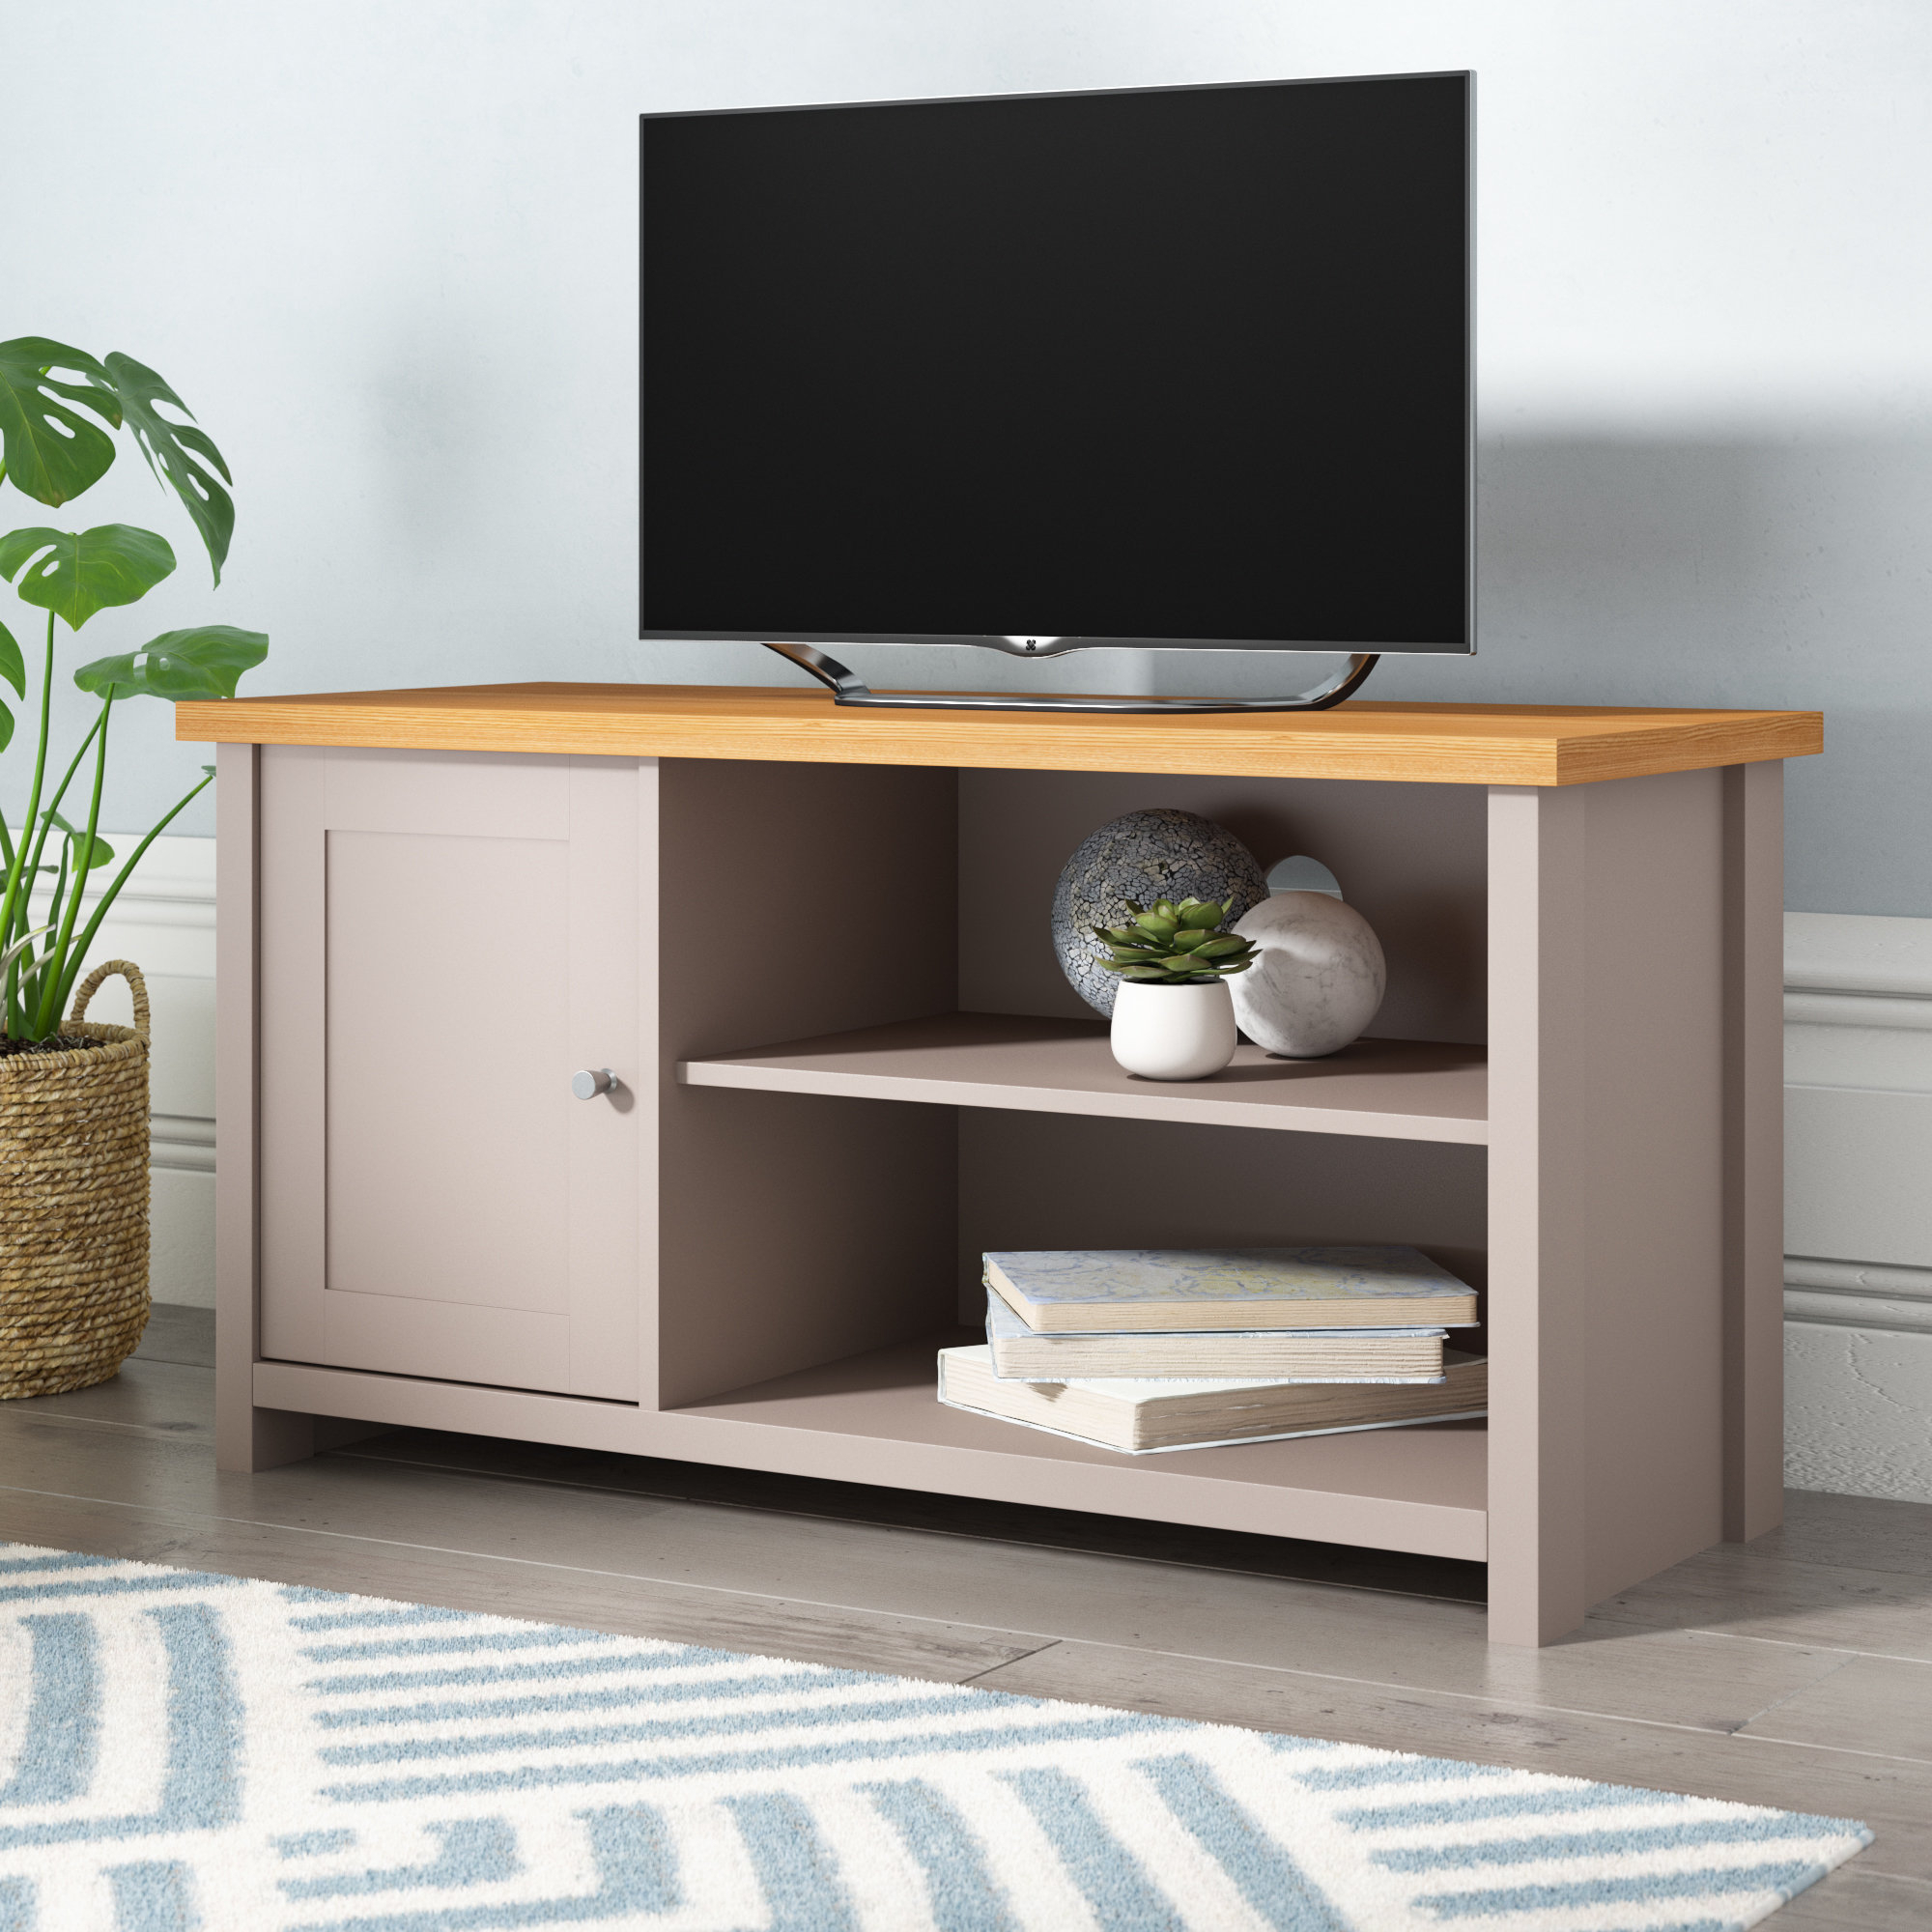 Grey Tv Stands & Entertainment Units | Wayfair.co.uk throughout Valencia 70 Inch Tv Stands (Image 7 of 30)